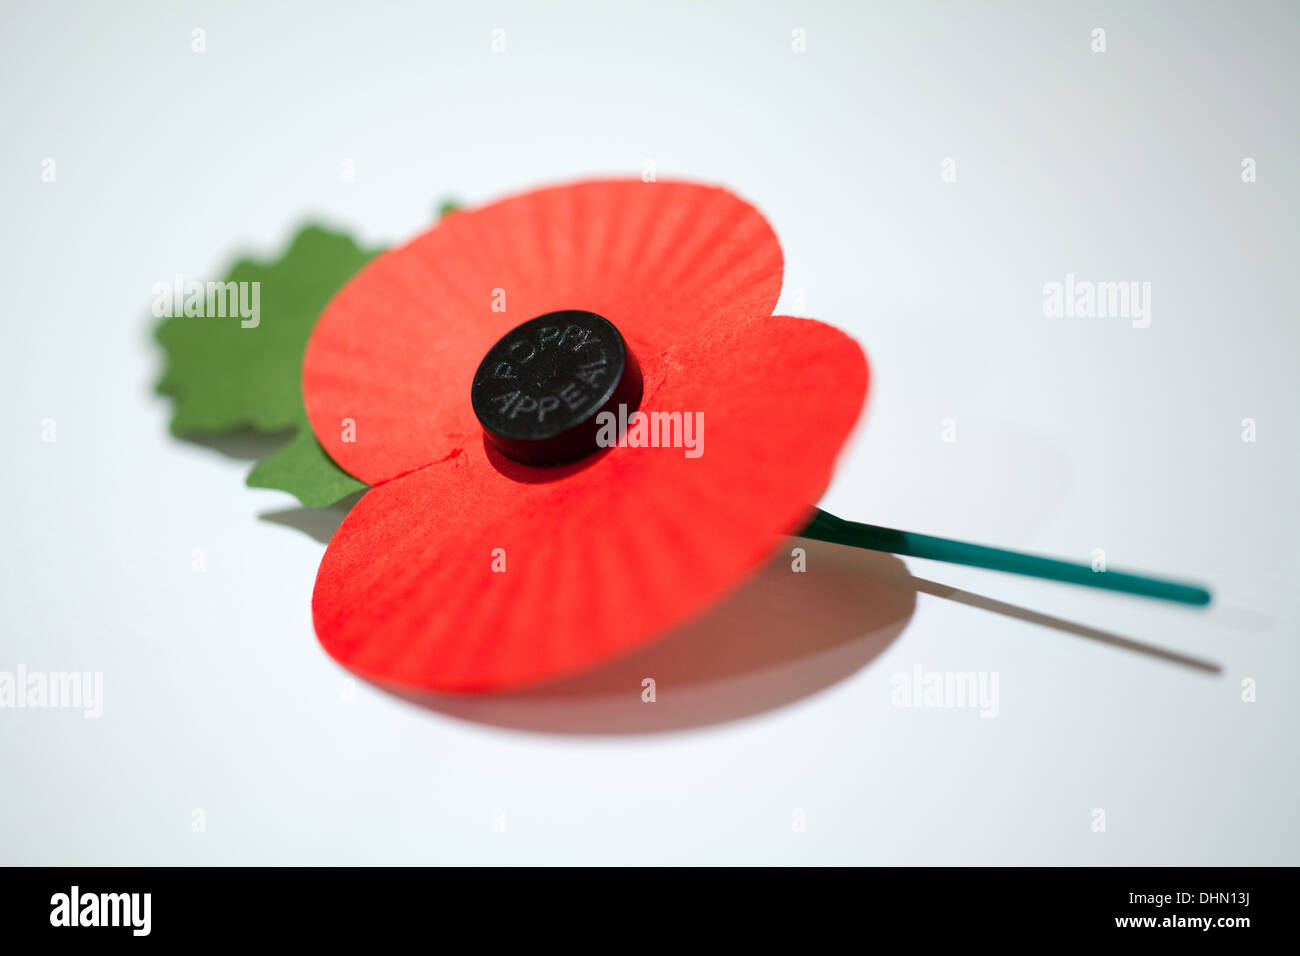 Poppy appeal poppy on white background - Stock Image